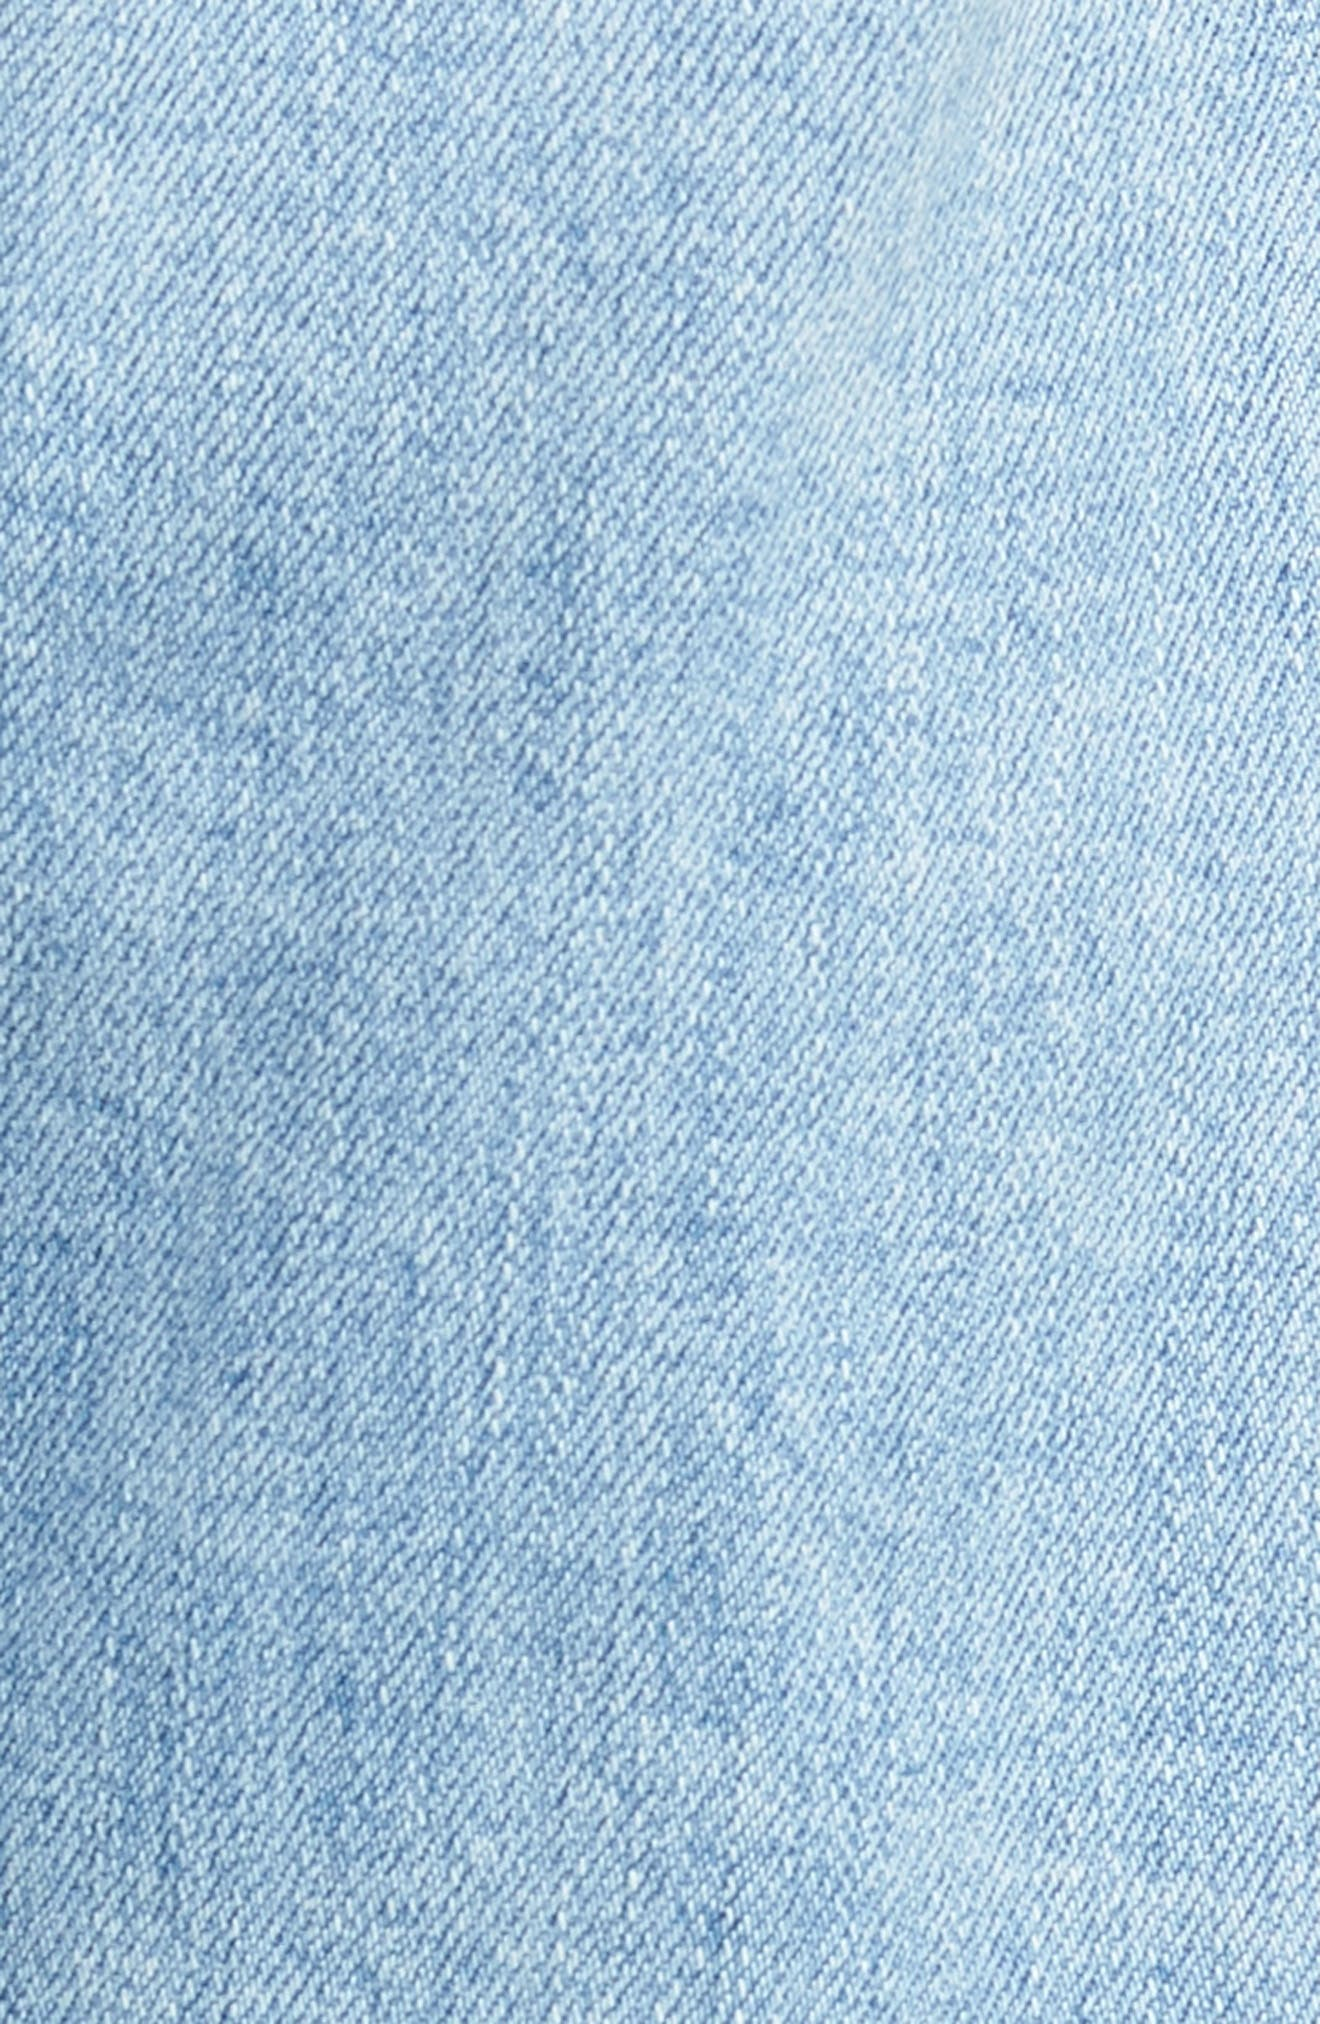 CITIZENS OF HUMANITY,                             Emerson Ripped Crop Slim Boyfriend Jeans,                             Alternate thumbnail 6, color,                             455